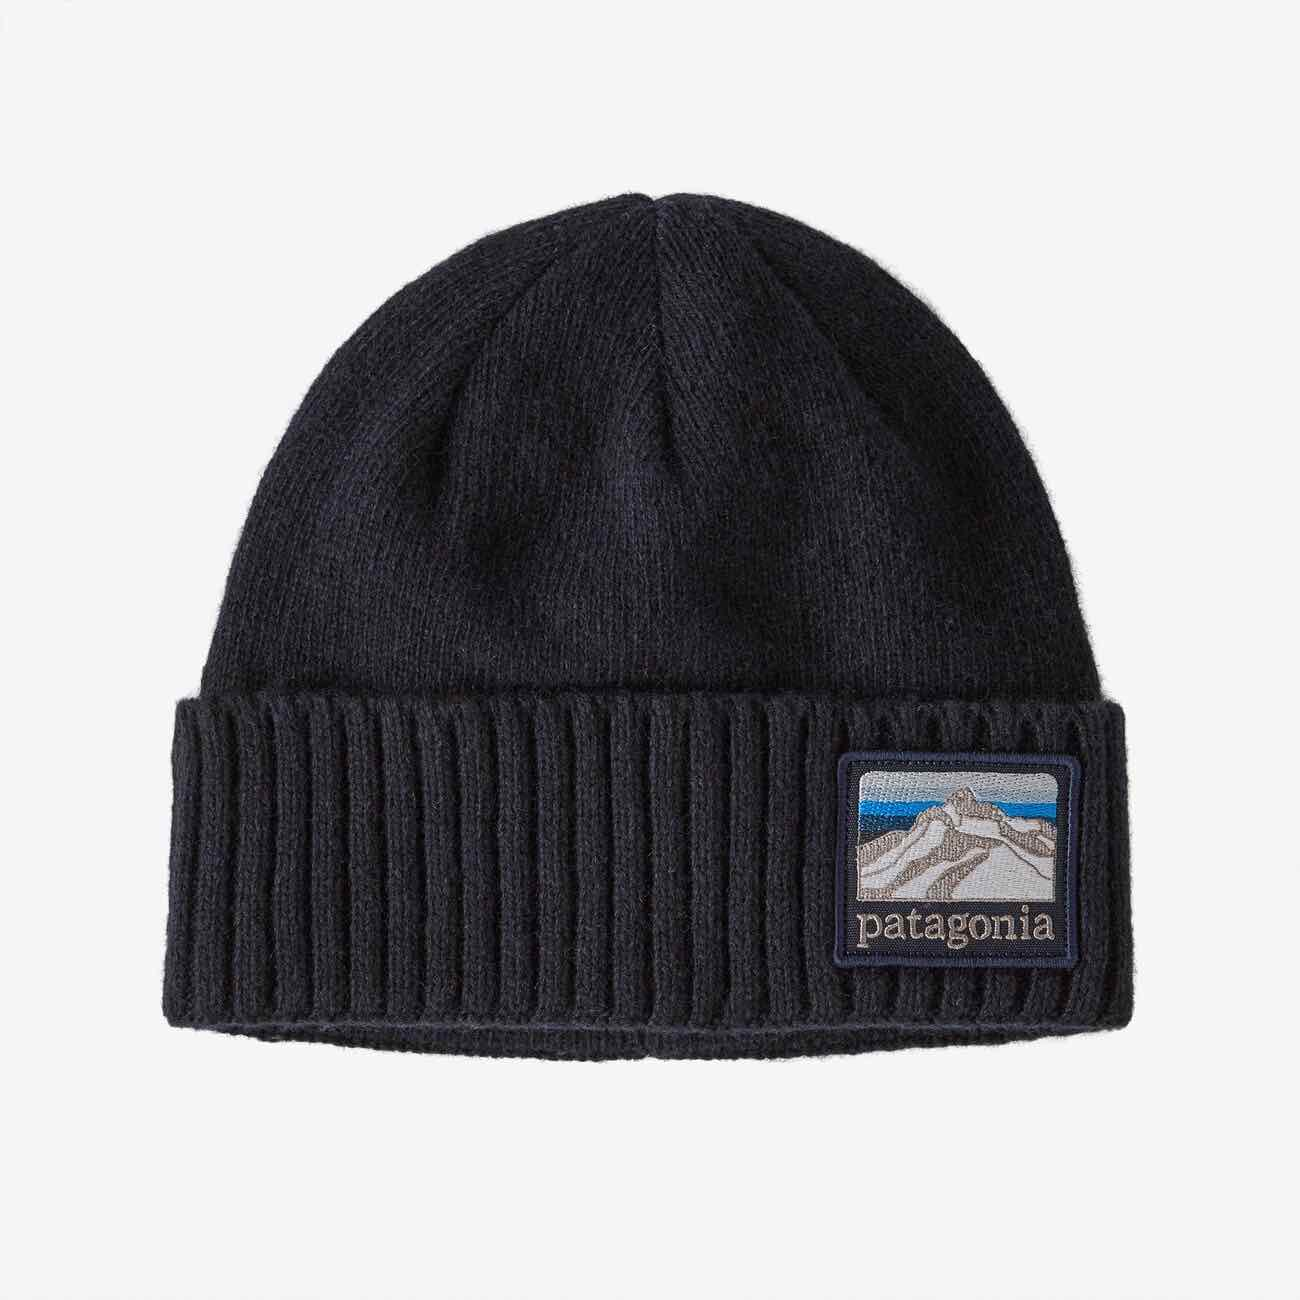 PATAGONIA BRODEO BEANIE - LINE LOGO NAVY